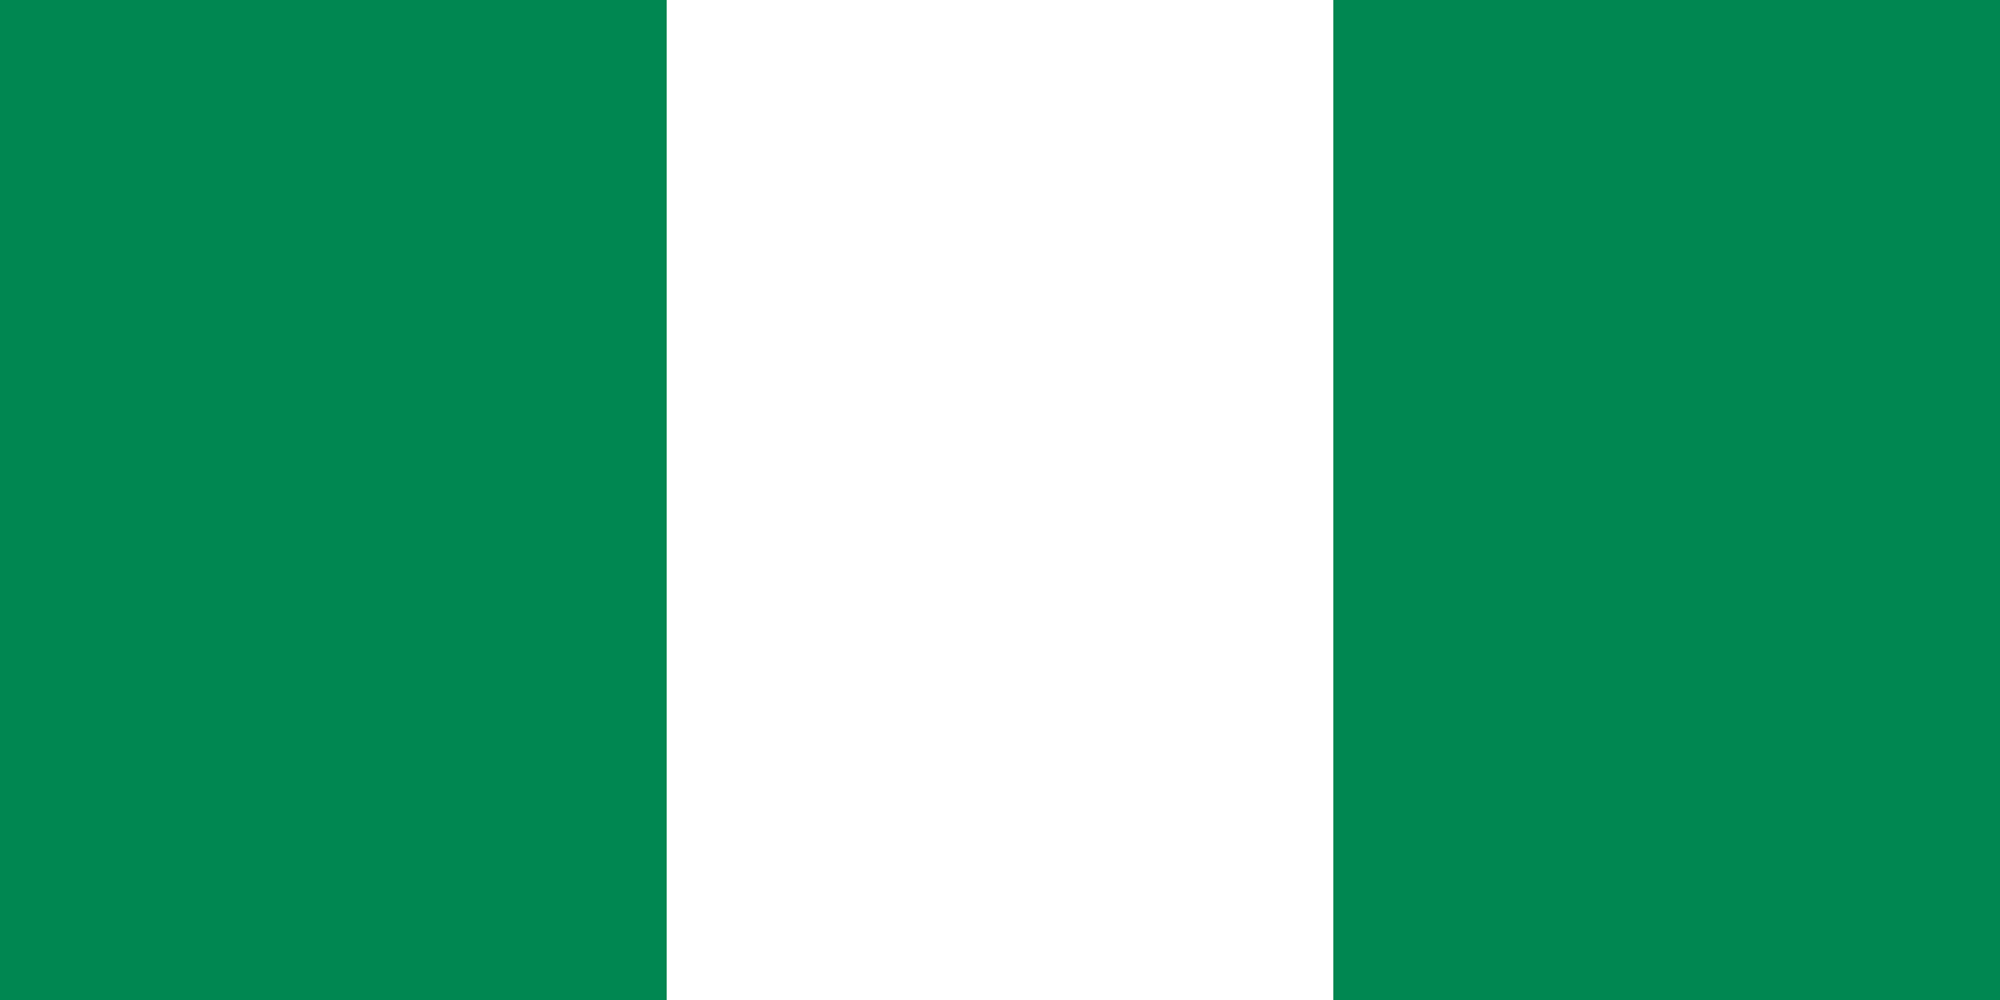 nigeria-flag-large